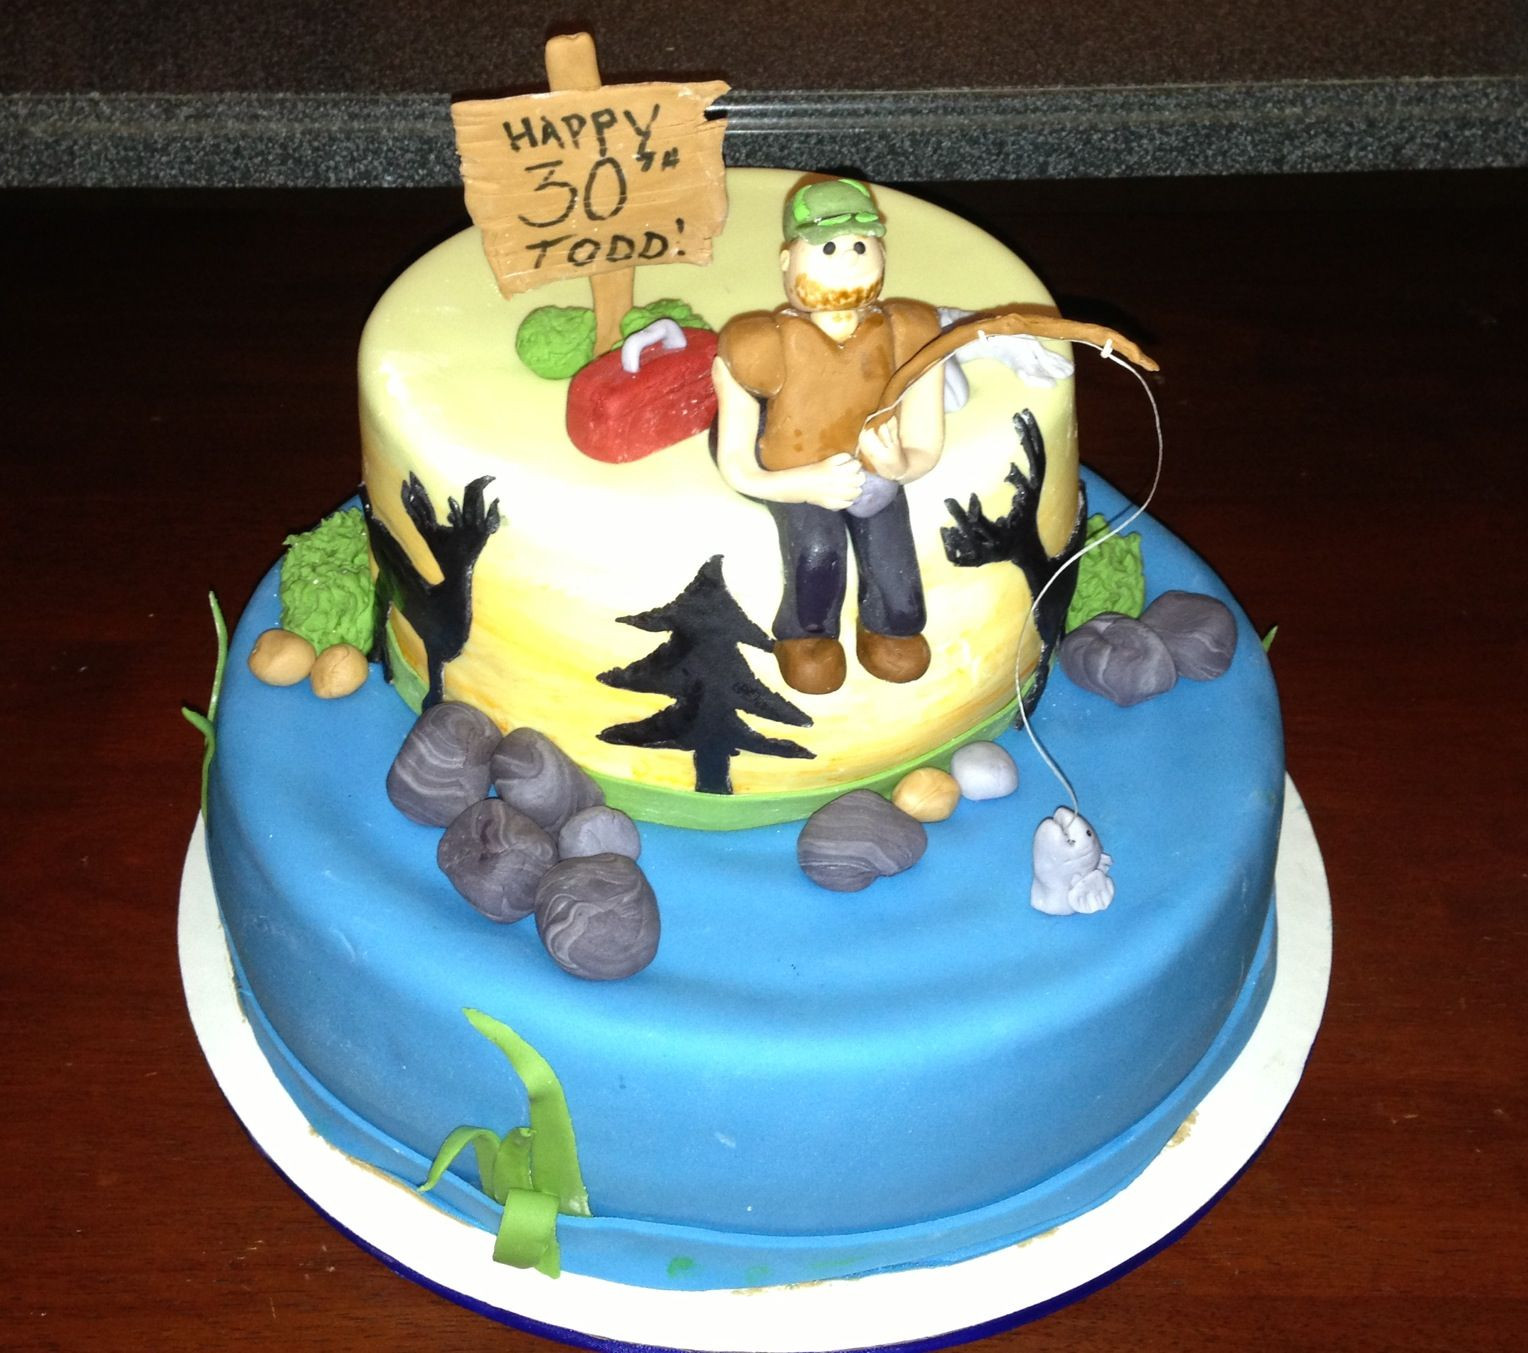 Best ideas about Birthday Cake For Husband . Save or Pin My husband s 30th Birthday cake Food Now.